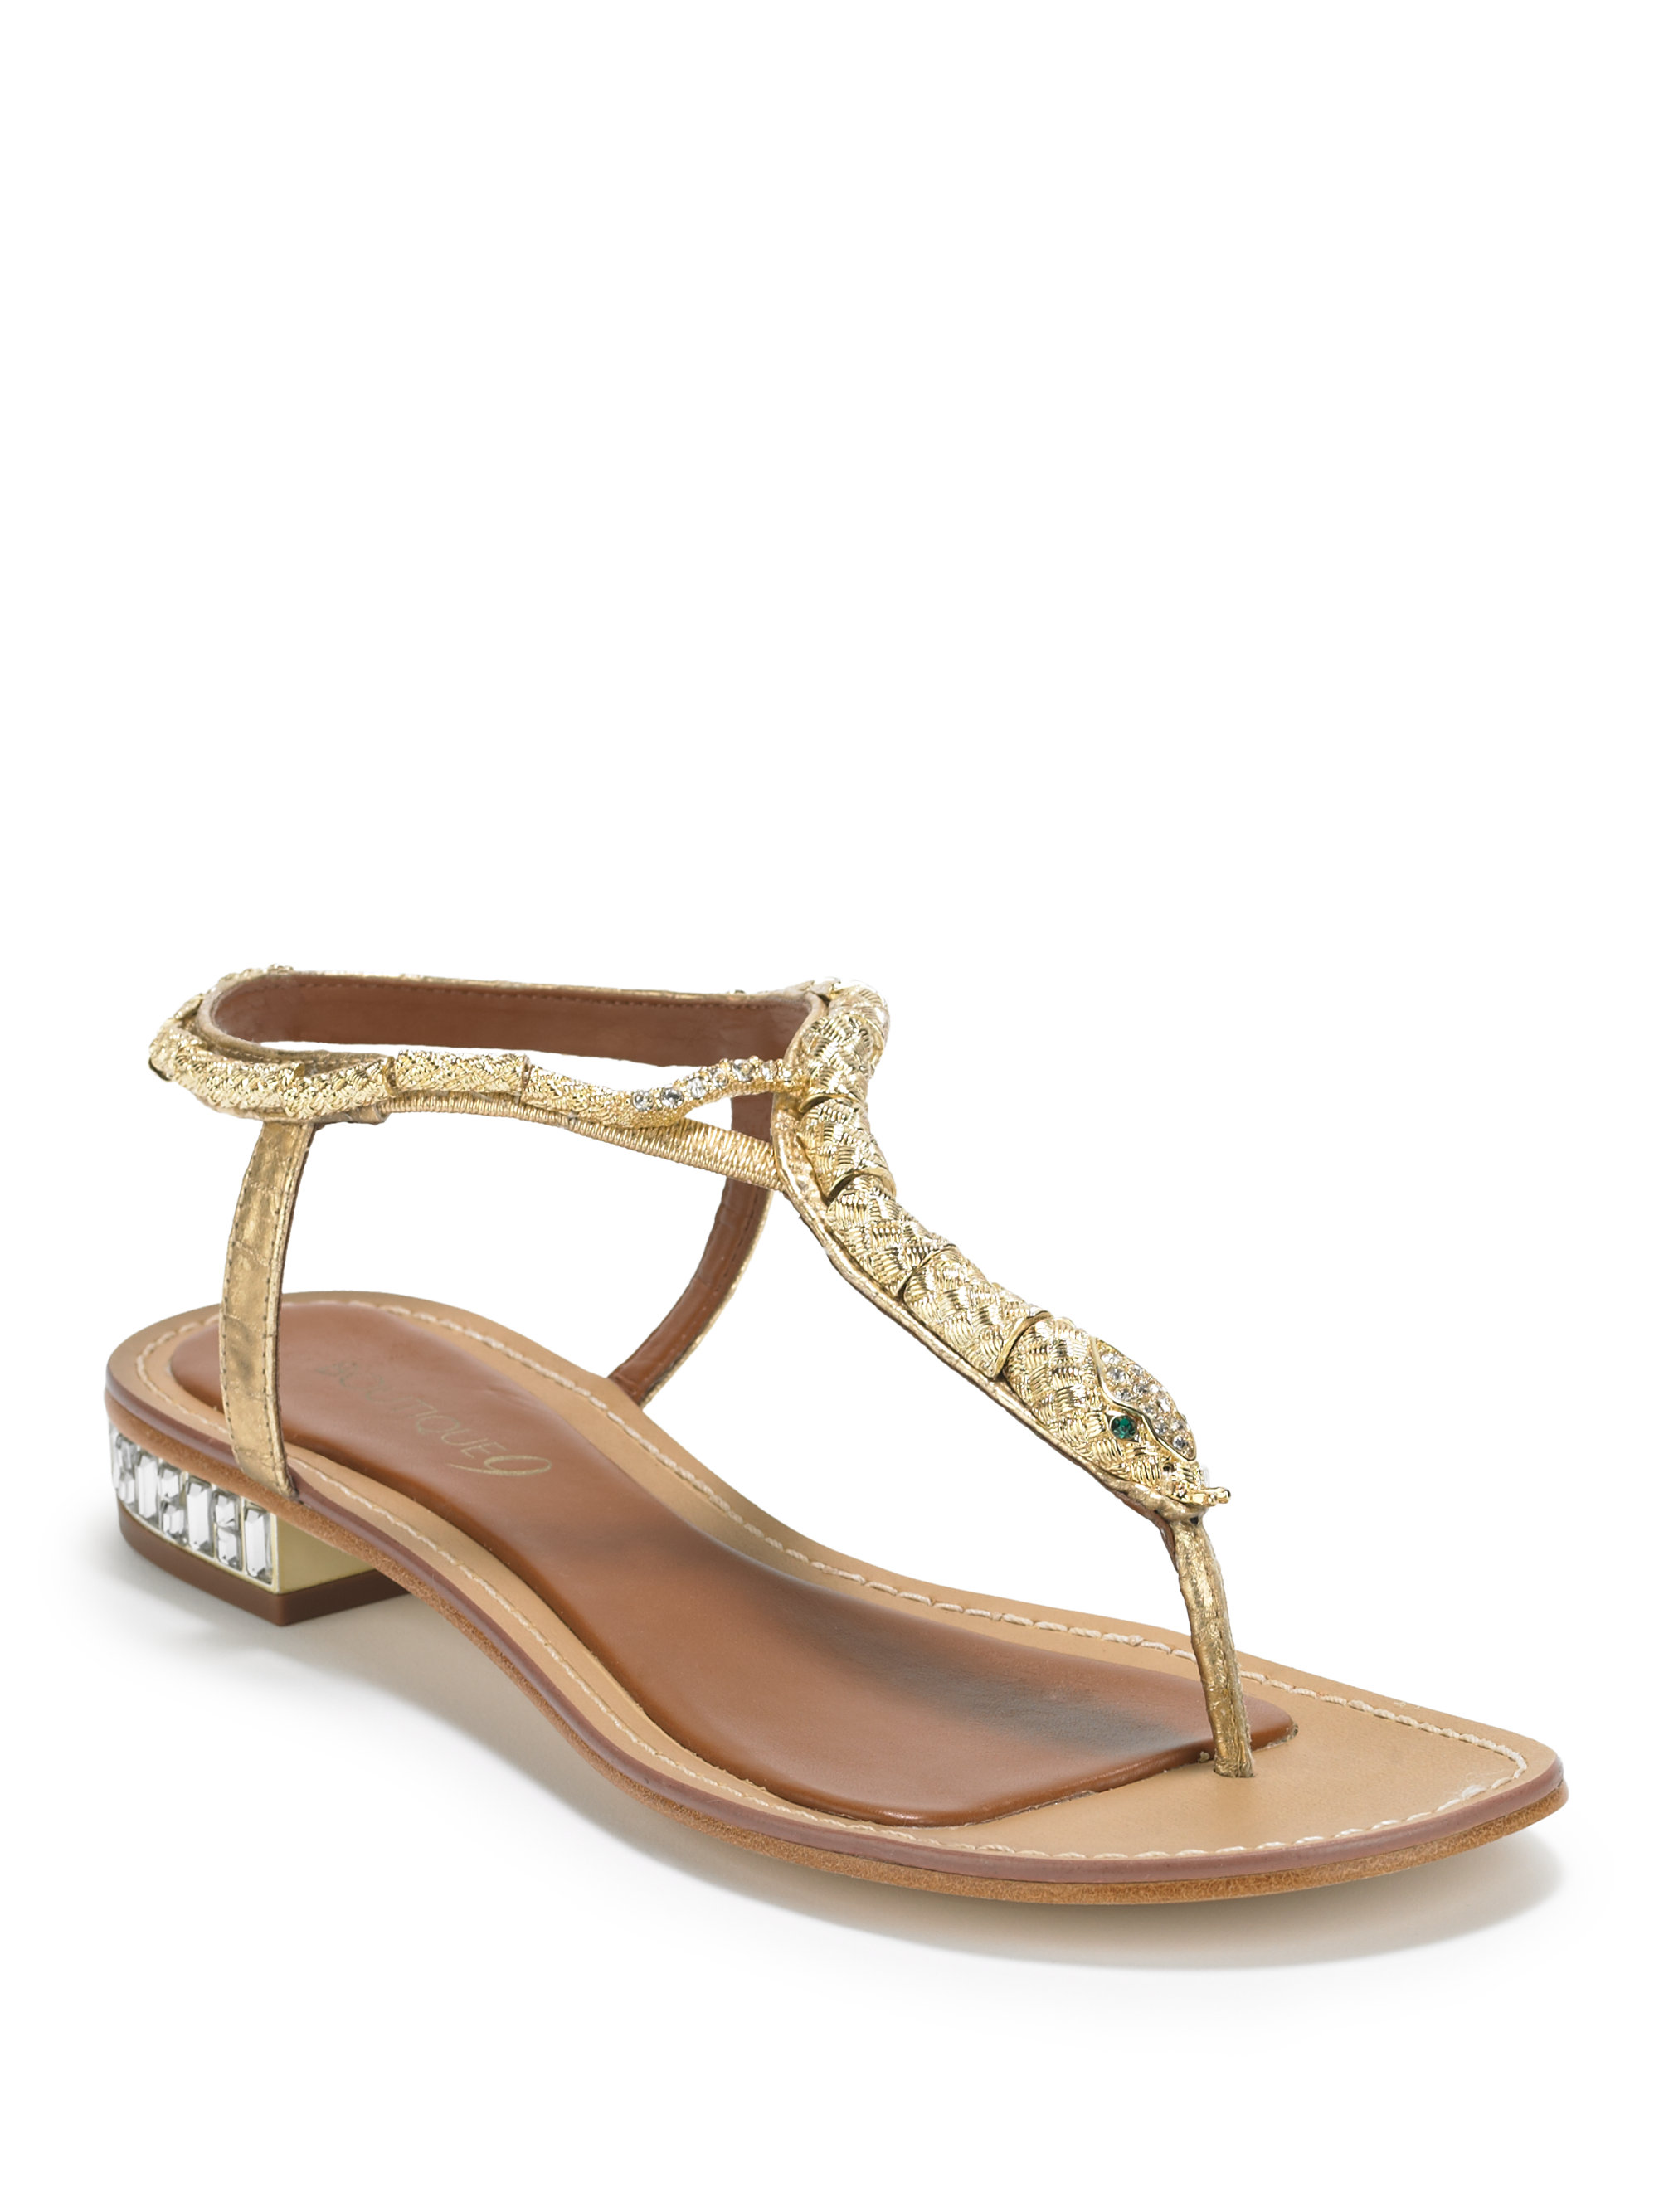 Lyst Boutique 9 Barbiera Snake Thong Sandals Gold In